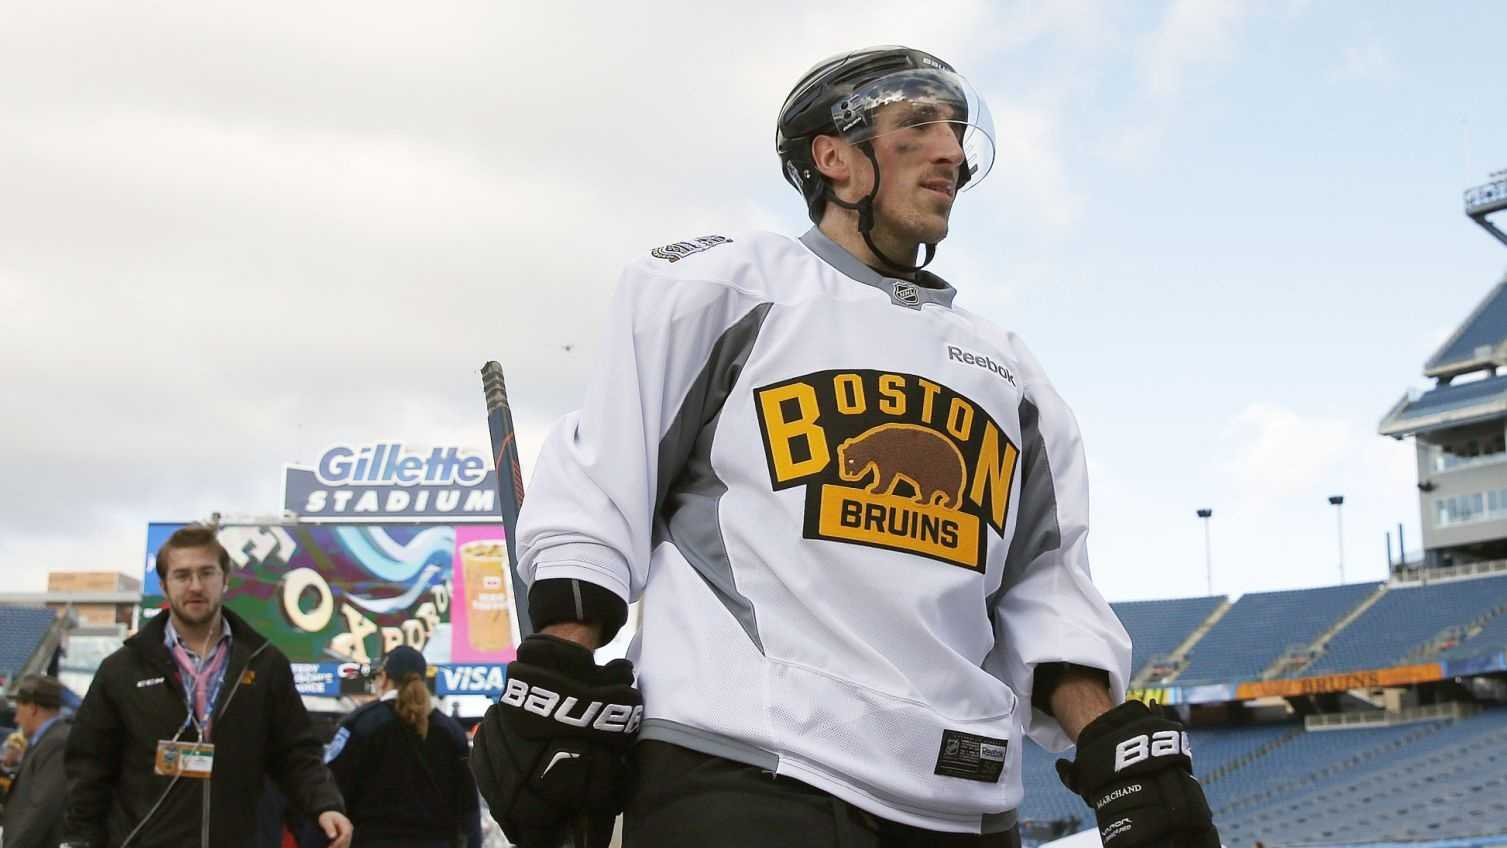 Boston Bruins' Brad Marchand walks off the ice after practice on the outdoor rink at Gillette Stadium in Foxborough, Mass., Thursday, Dec. 31, 2015, where the Bruins will play the Montreal Canadiens in the NHL Winter Classic hockey game on New Year's Day. Marchand was suspended for three games for a clipping incident on Dec. 29 and will not play in the game.